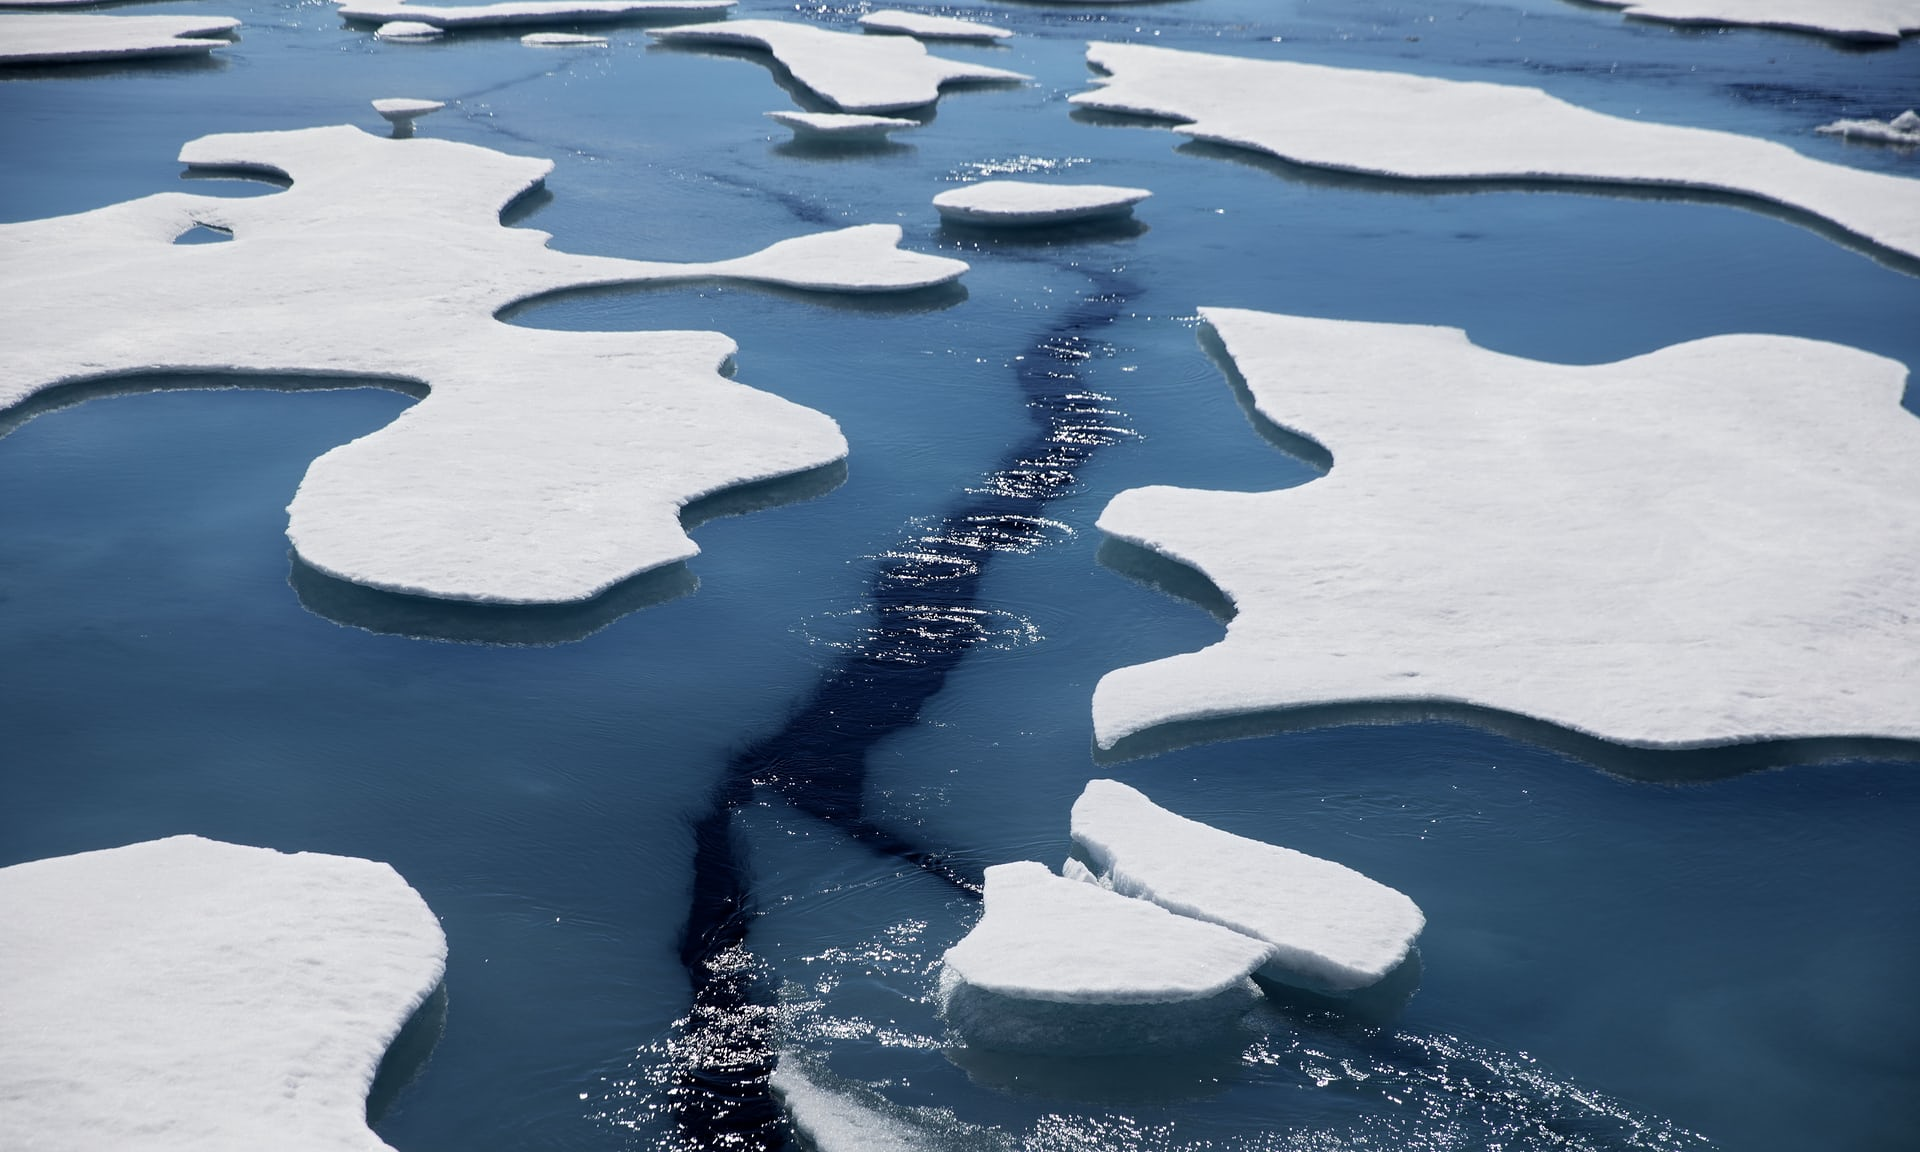 "President Trump is accused of deliberately obstructing research on global warming, blocking a critically important technique for investigating sea-ice cover at the poles. The row has erupted after a key polar satellite broke down a few days ago, leaving the US with only three ageing ones, and the only backup was ordered dismantled. [The Guardian] Melting sea ice (Photo: David Goldman | AP) The Trump Administration released a sweeping federal climate report concluding that the Earth is warming at an alarming rate due to human activity. The congressionally mandated report said the Earth is undergoing its warmest period ""in the history of modern civilization,"" fueled primarily by rising levels of carbon dioxide. [Bloomberg] SaskPower's president said it is ""highly unlikely"" his company will recommend the government pursue carbon capture and storage projects in the foreseeable future because of the costs. The economics of power generation have changed since the company decided in 2010 to retrofit a coal-fired generating unit to capture and store carbon emissions. [CBC.ca] To the anger of environmentalists, a Trump adviser is expected to take part in a presentation in at COP23, the UN's climate conference in Bonn, promoting coal as a solution to climate change. Separately, a group of governors will say that the US is still committed to climate action despite Mr Trump's rejection of the Paris agreement. [BBC News] There's been more than $3.3 billion in insured losses caused by the wildfires in California so far this year, with the figure expected to rise, the California Department of Insurance has revealed. California Insurance Commissioner Dave Jones said he is concerned that the fires represent a new normal, as climate change raises temperatures. [PlanetSave.com]"